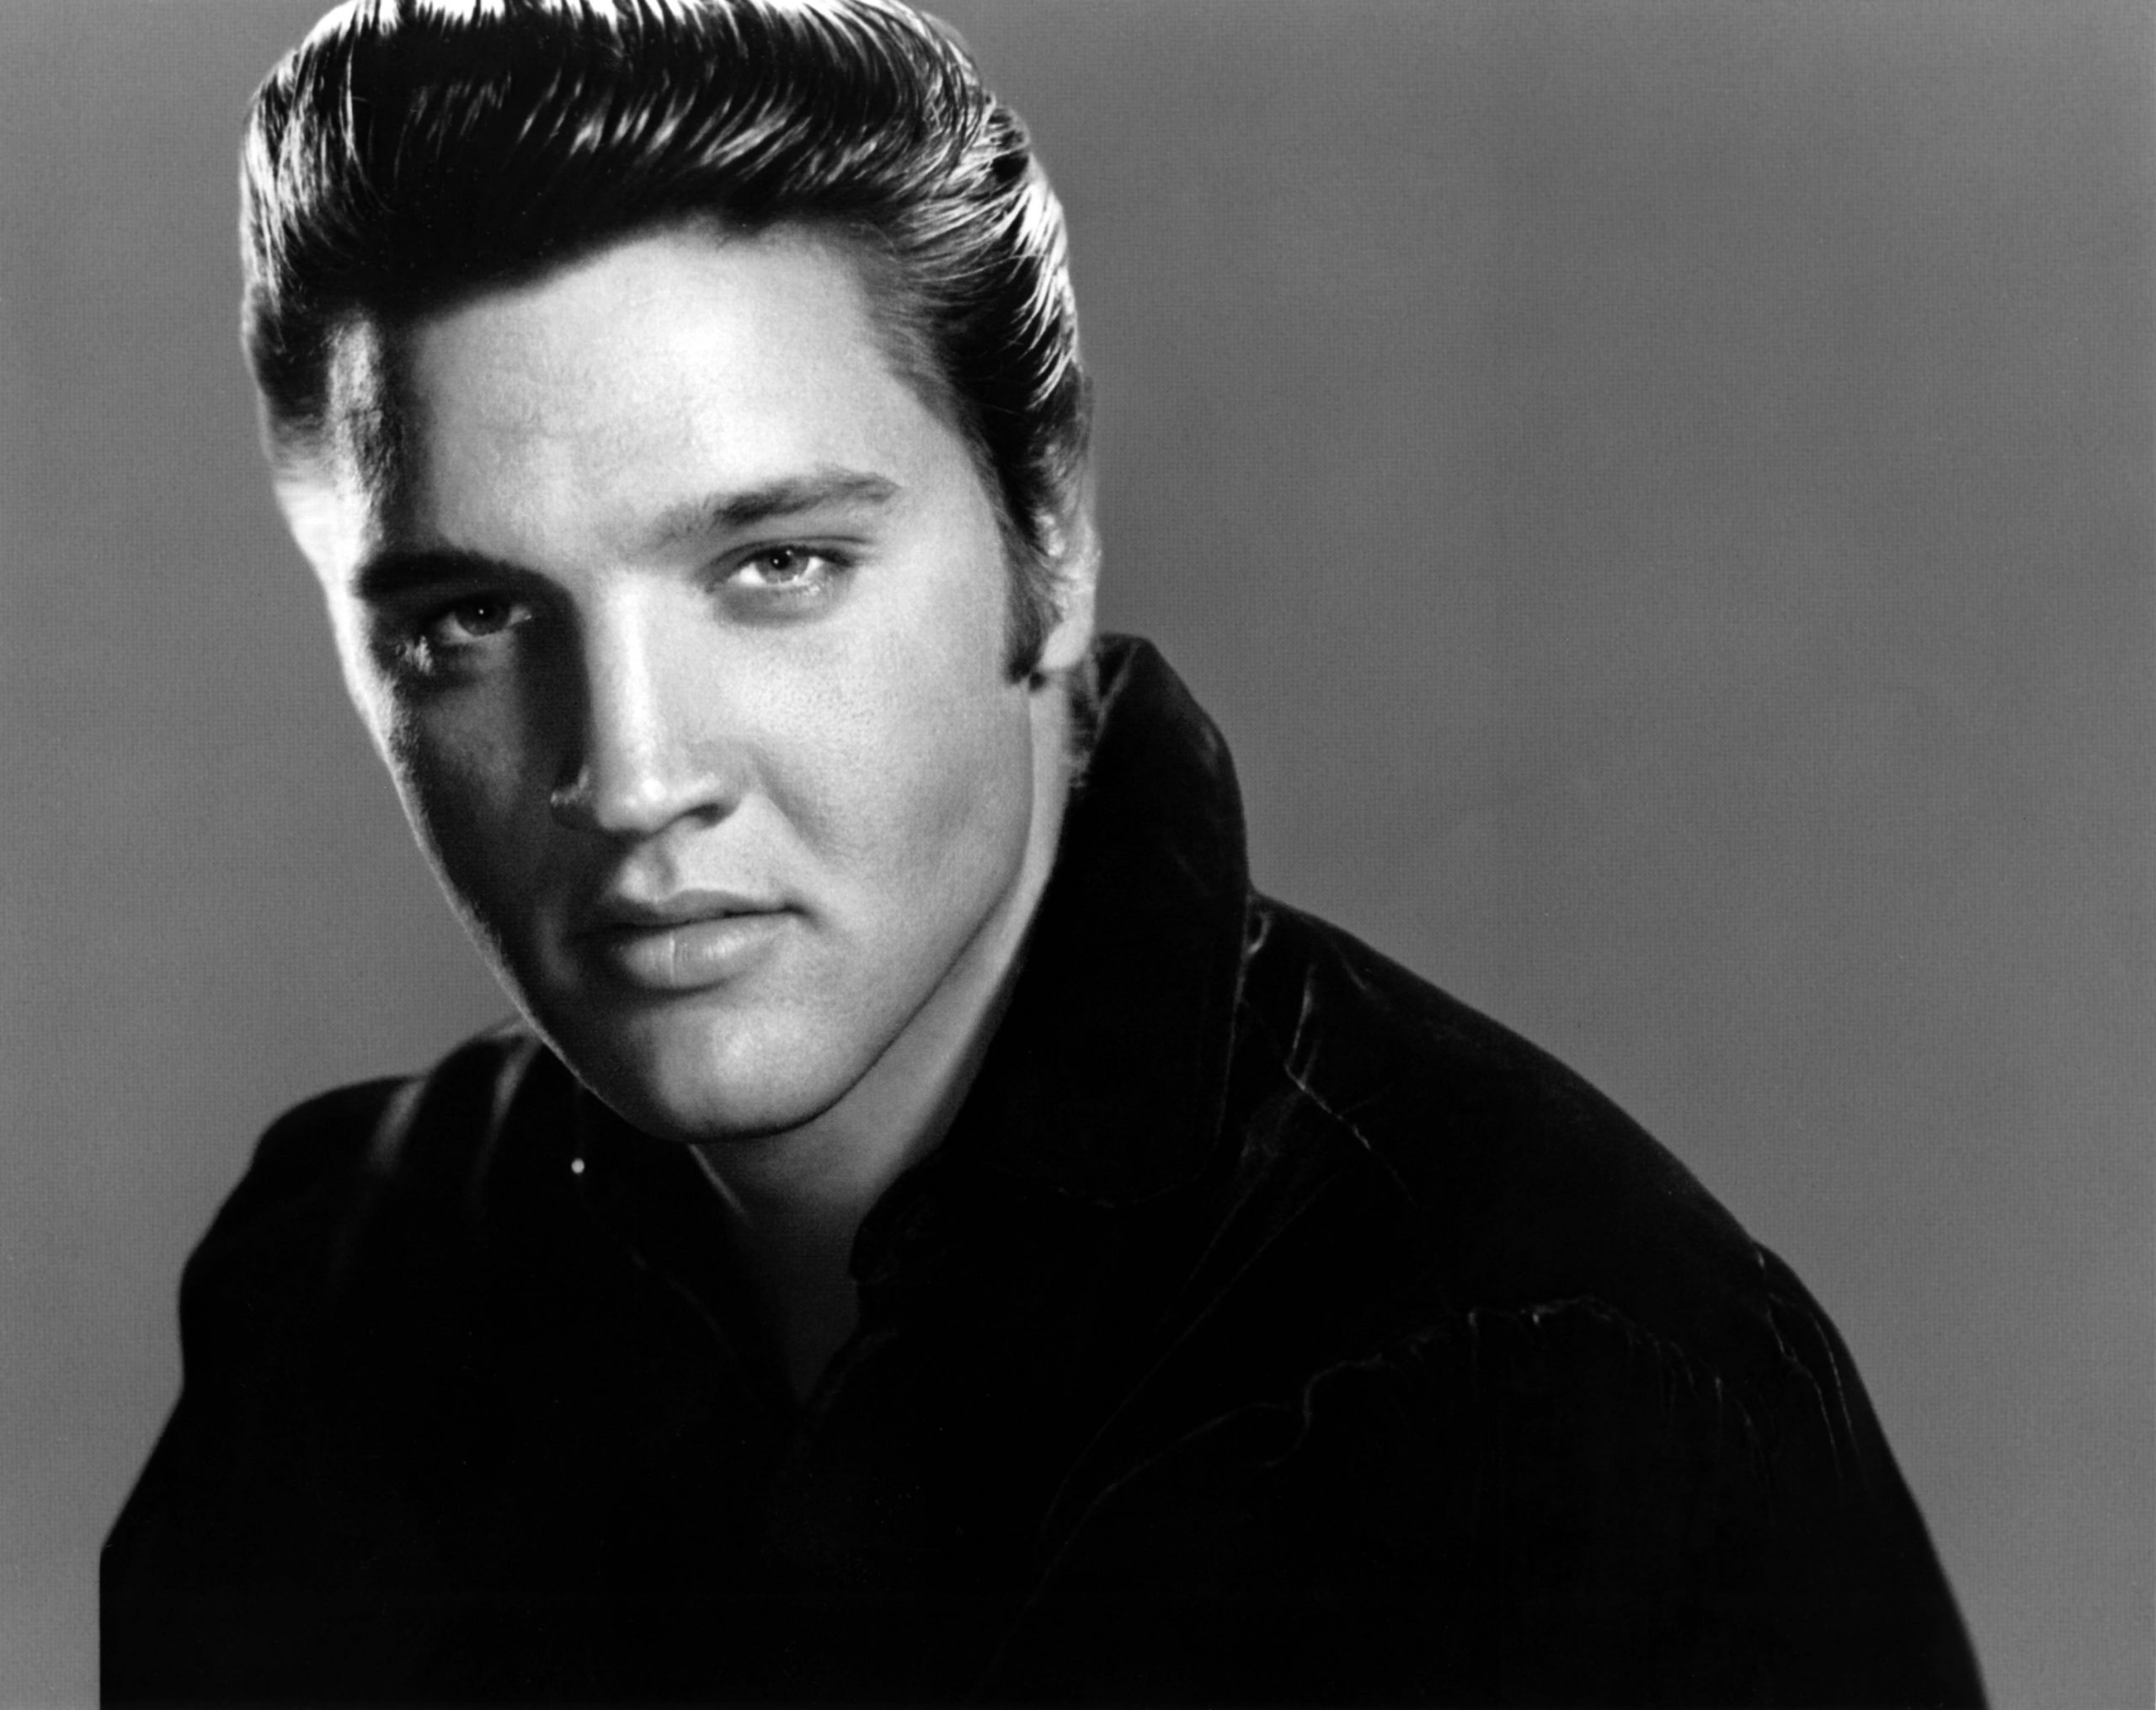 Elvis Presley's death and burial almost led to a ransom